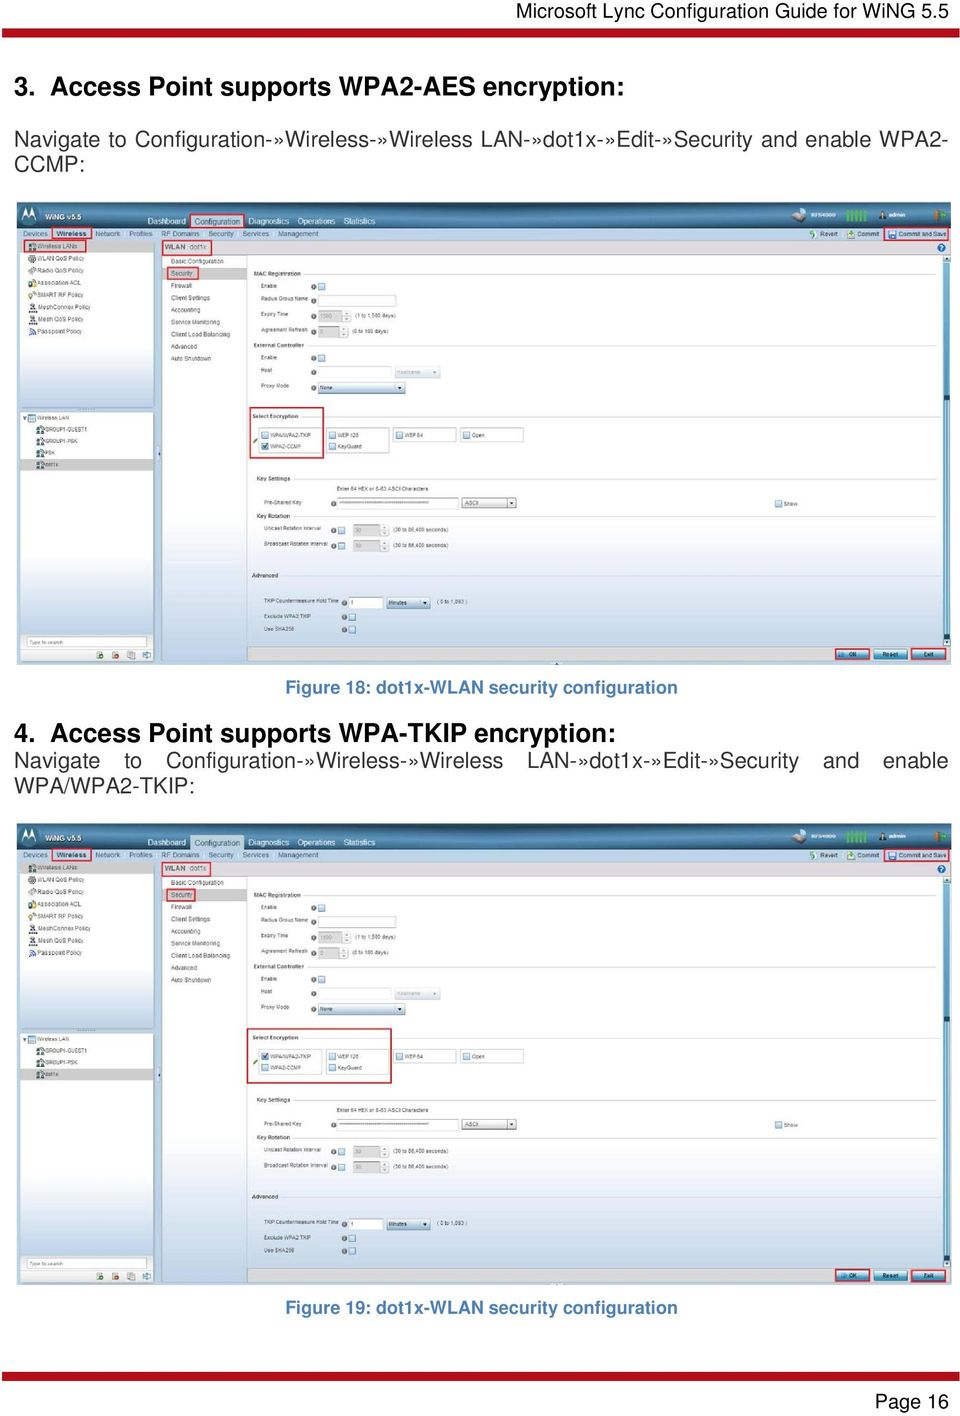 4. Access Point supports WPA-TKIP encryption: Navigate to Configuration-»Wireless-»Wireless